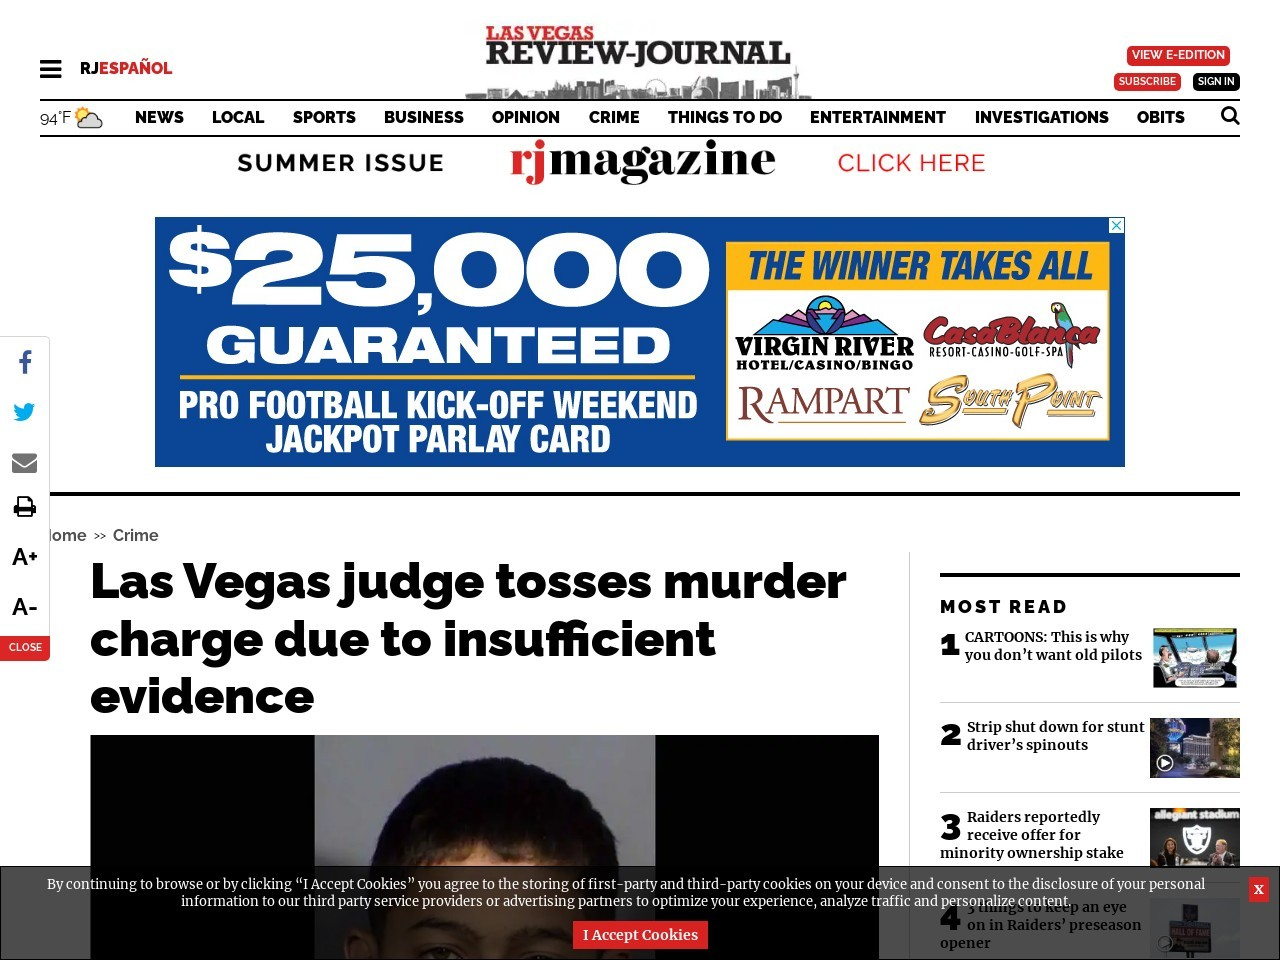 Las Vegas judge tosses murder charge due to insufficient evidence